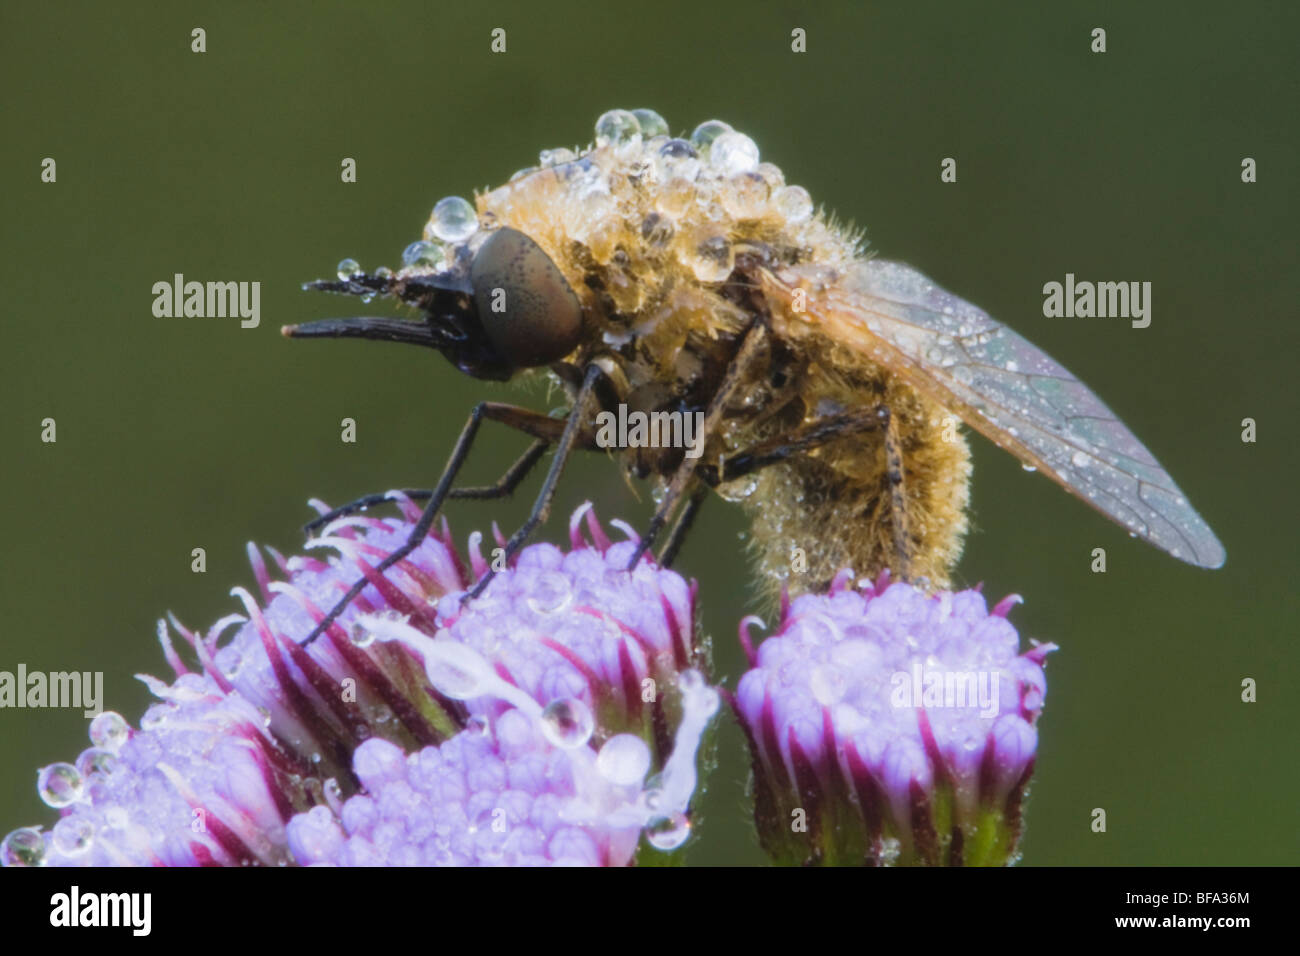 Fly (Diptera), dew covered on flower, Angier, North Carolina, USA - Stock Image